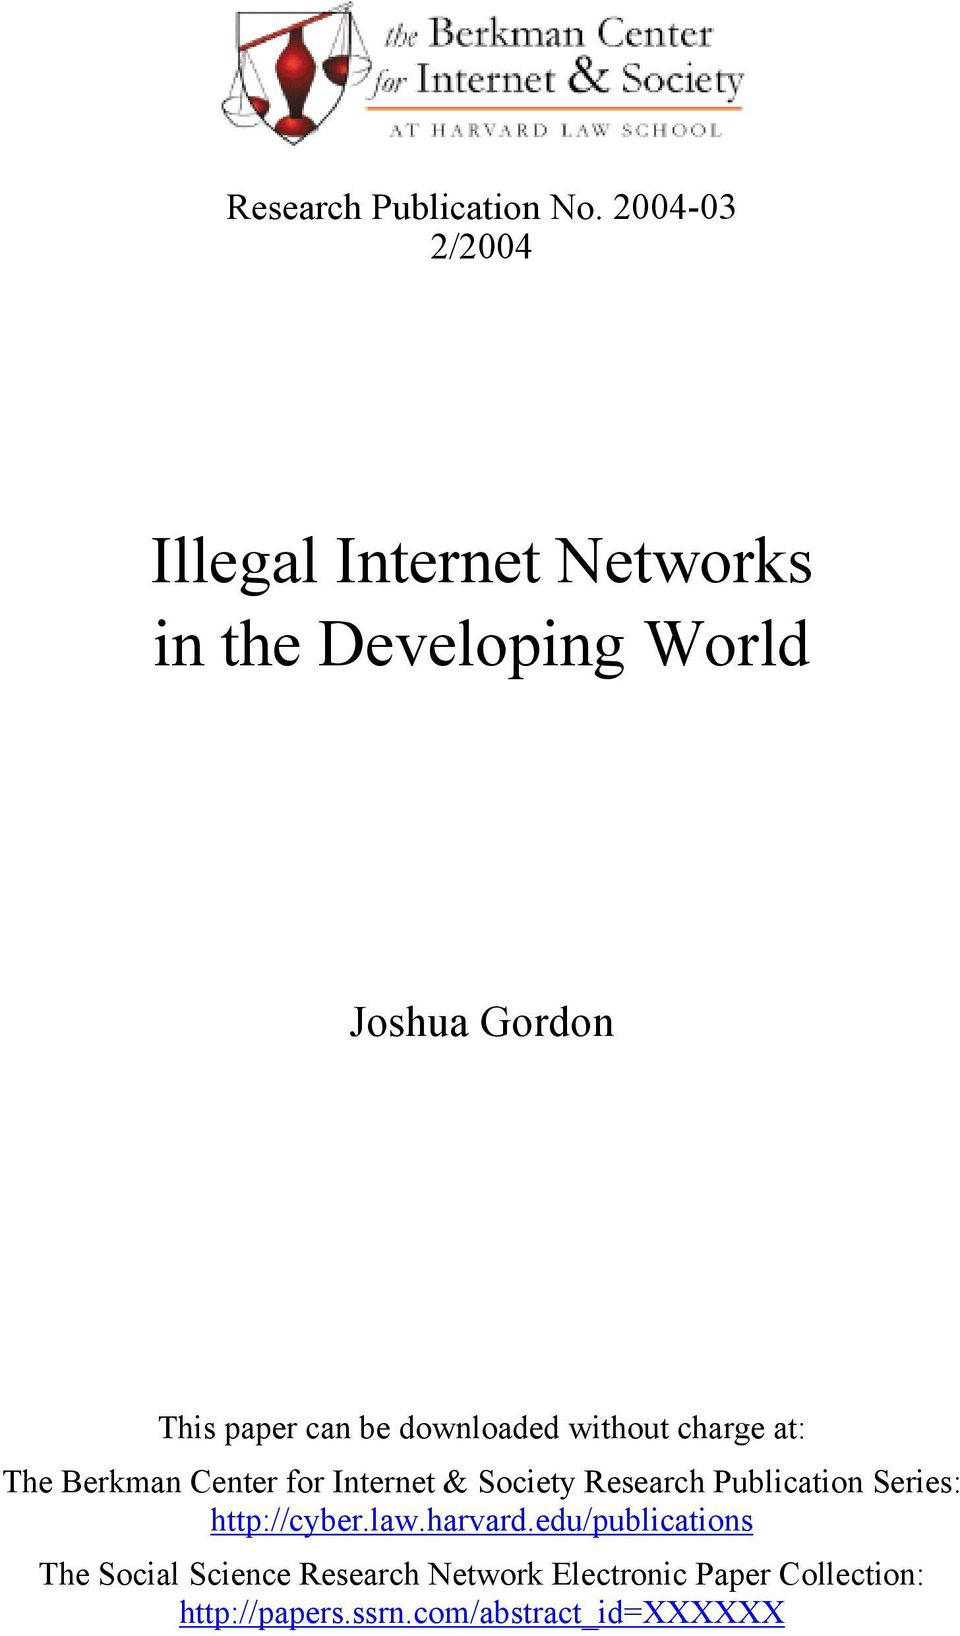 can be downloaded without charge at: The Berkman Center for Internet & Society Research